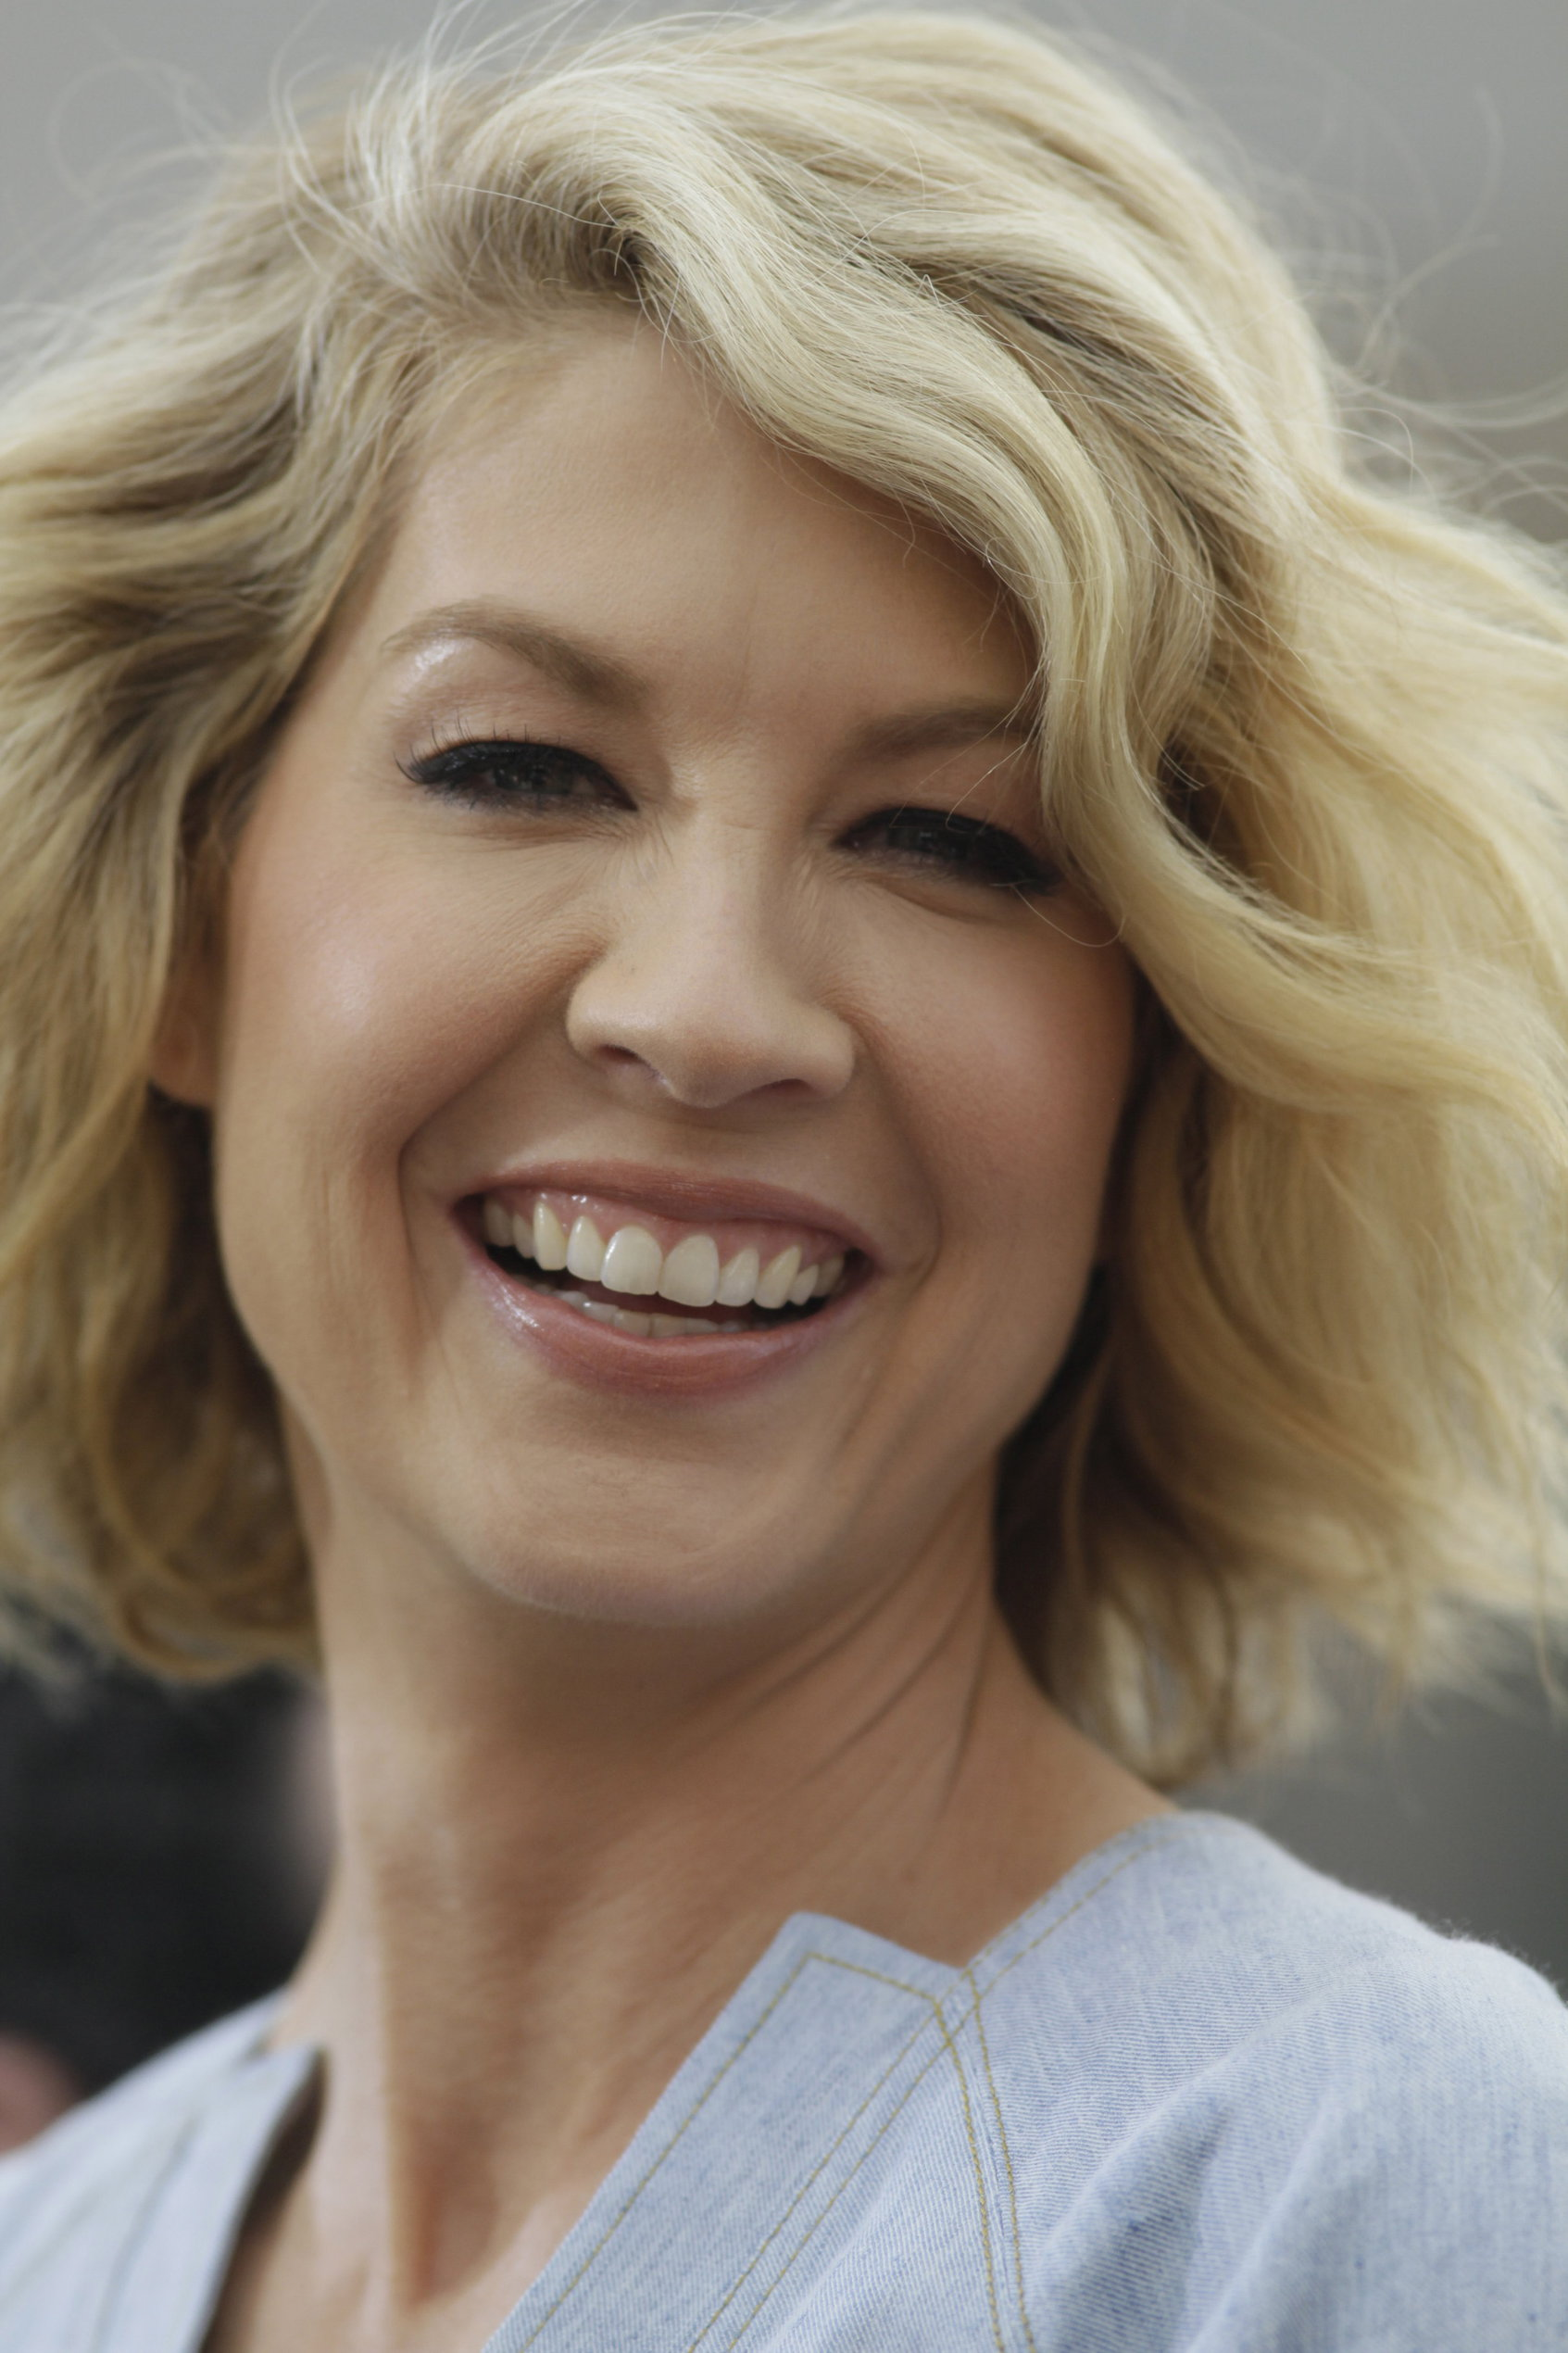 Jenna Elfman - On the set of Extra at The Grove in Los Angeles on February 14, 2013